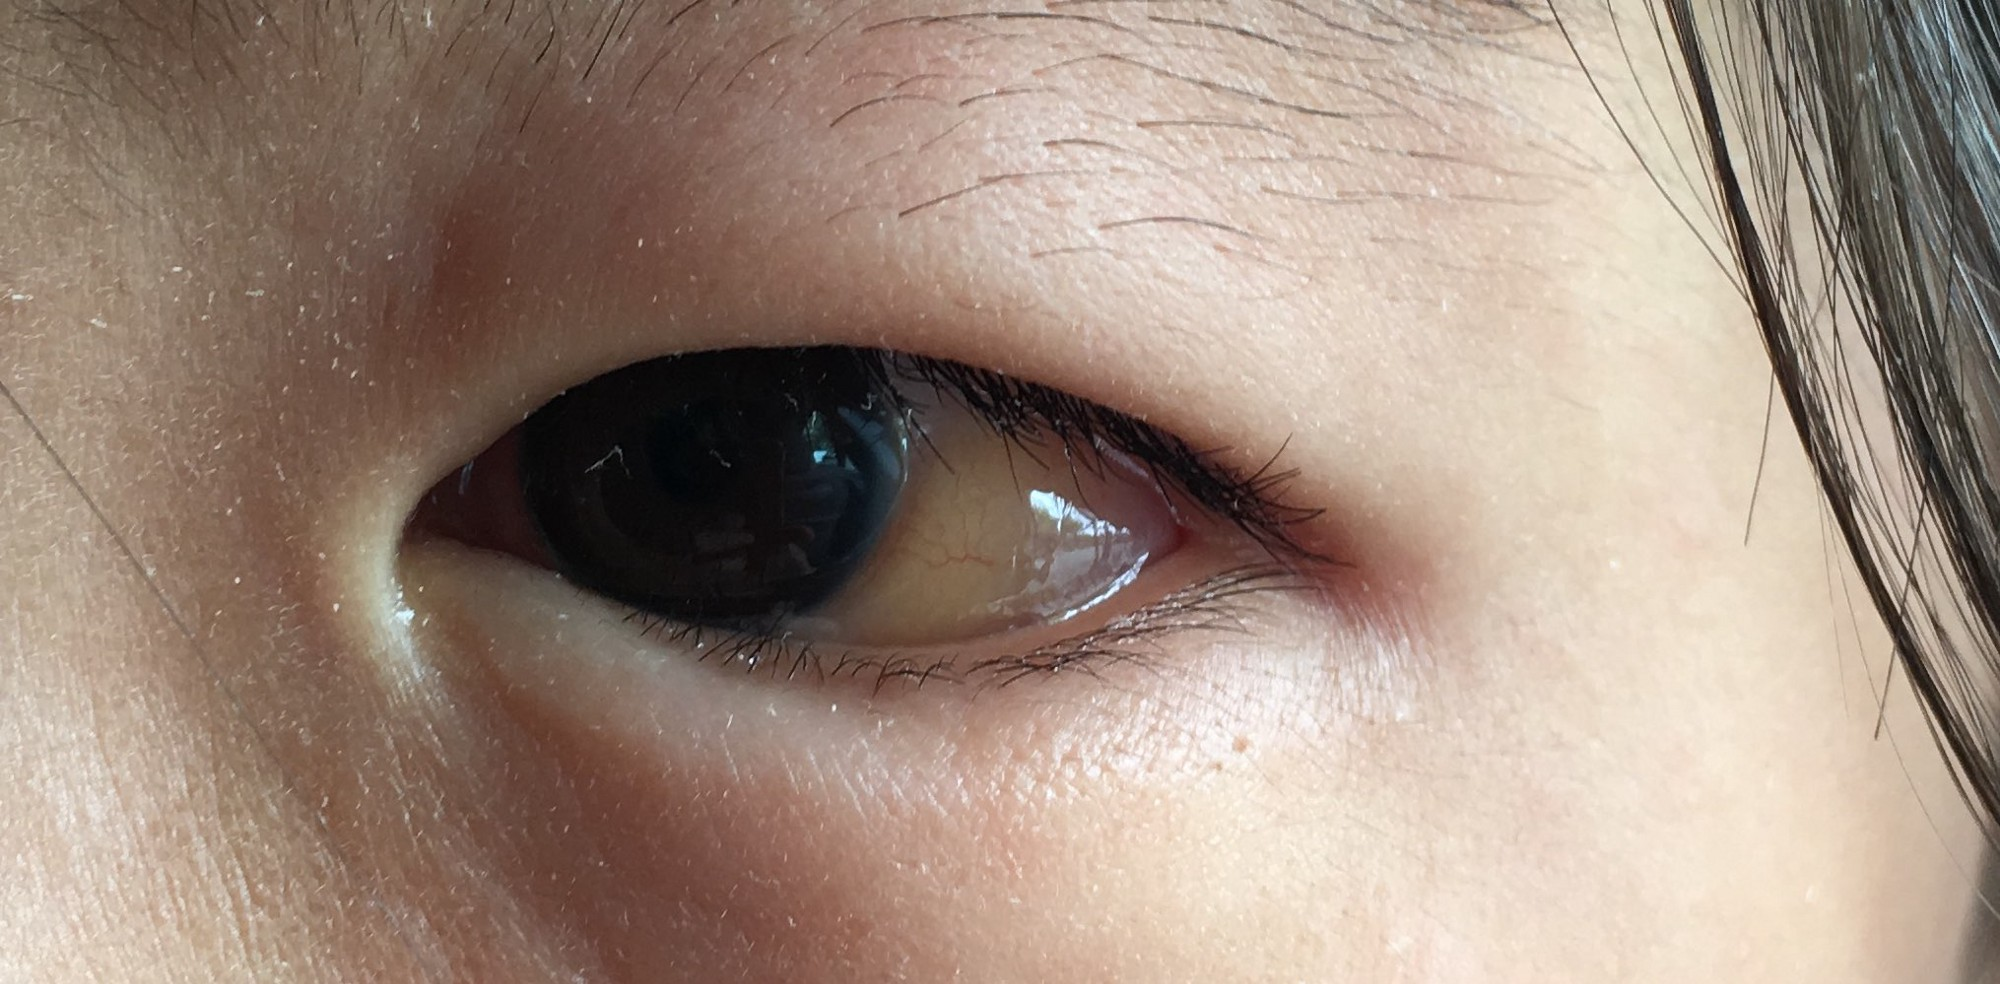 The sclera is changing color...